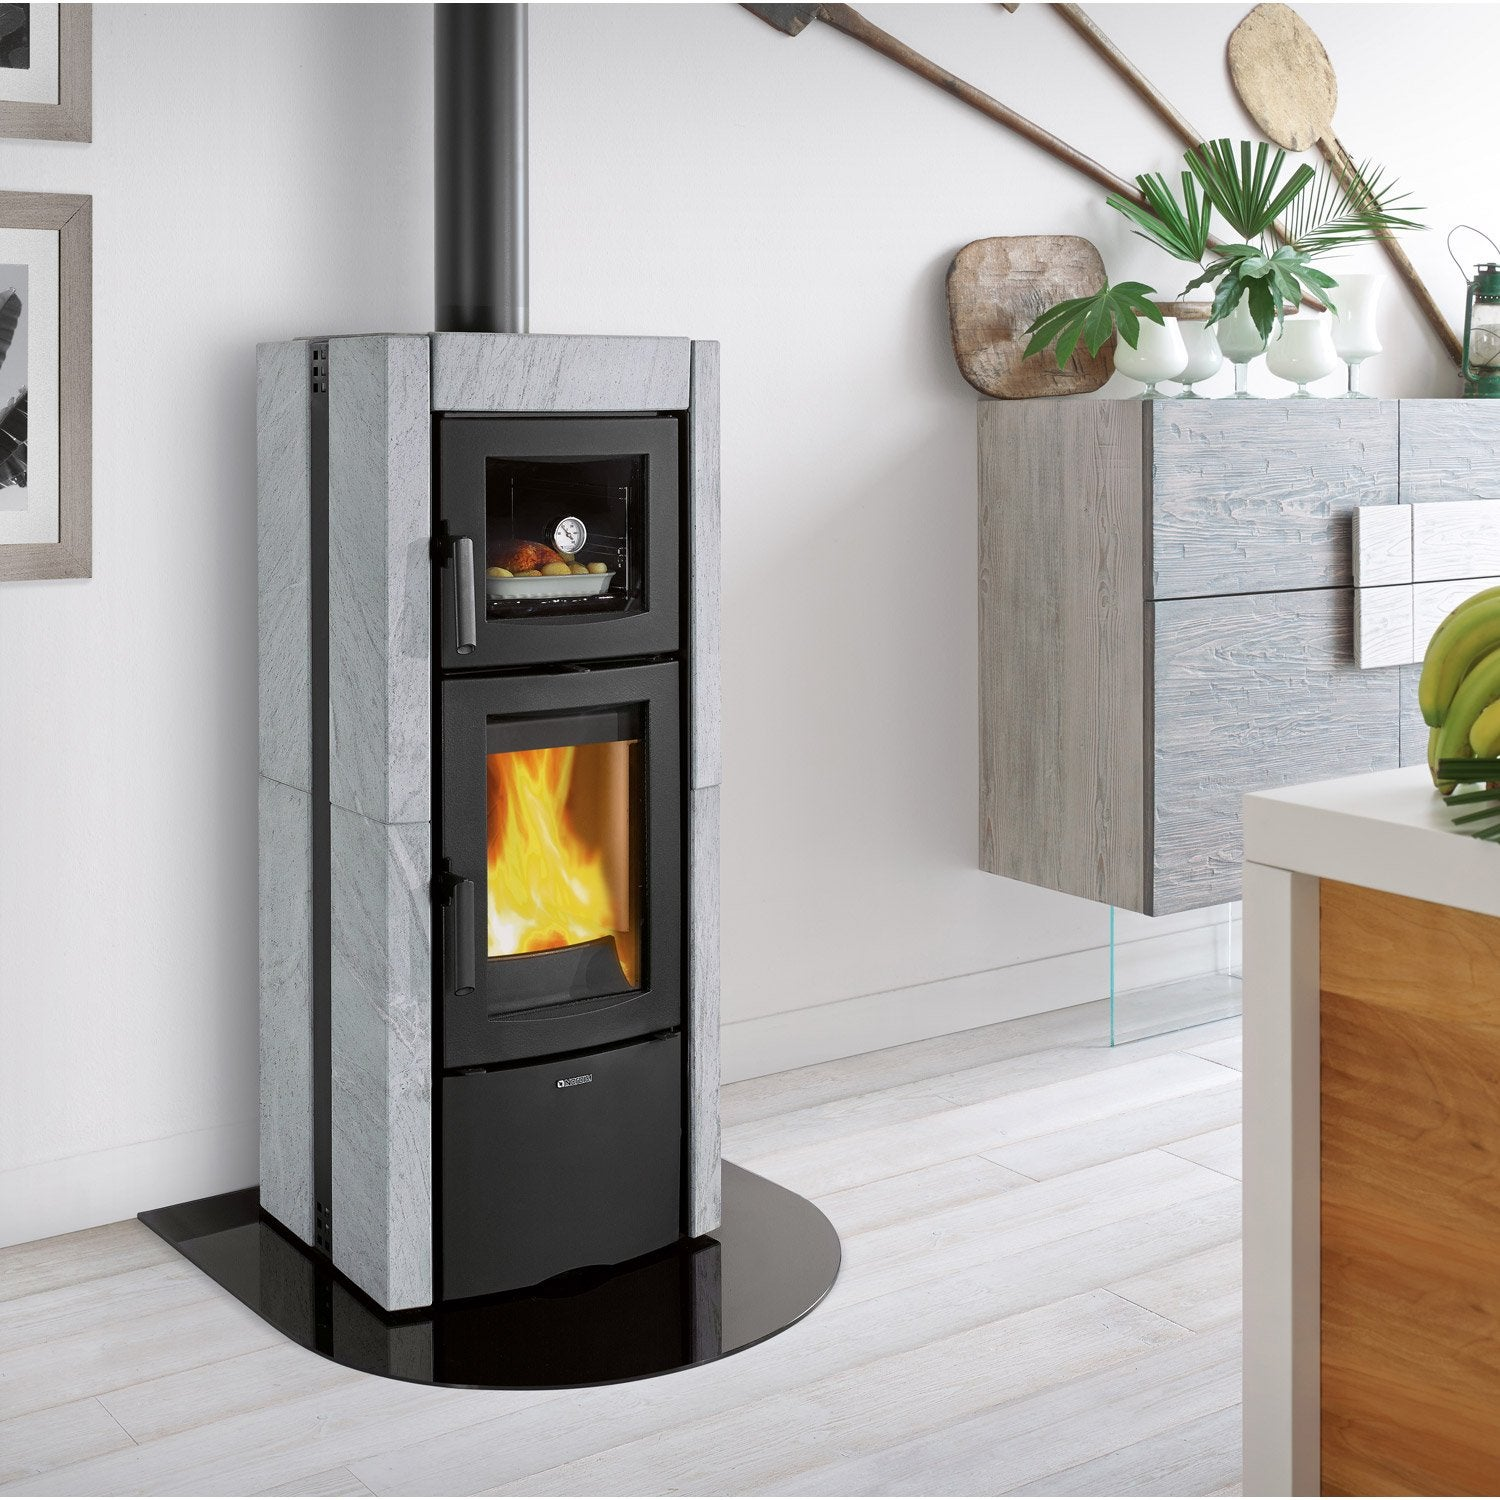 po le bois nordica ester forno pierre ollaire 10 3 kw leroy merlin. Black Bedroom Furniture Sets. Home Design Ideas